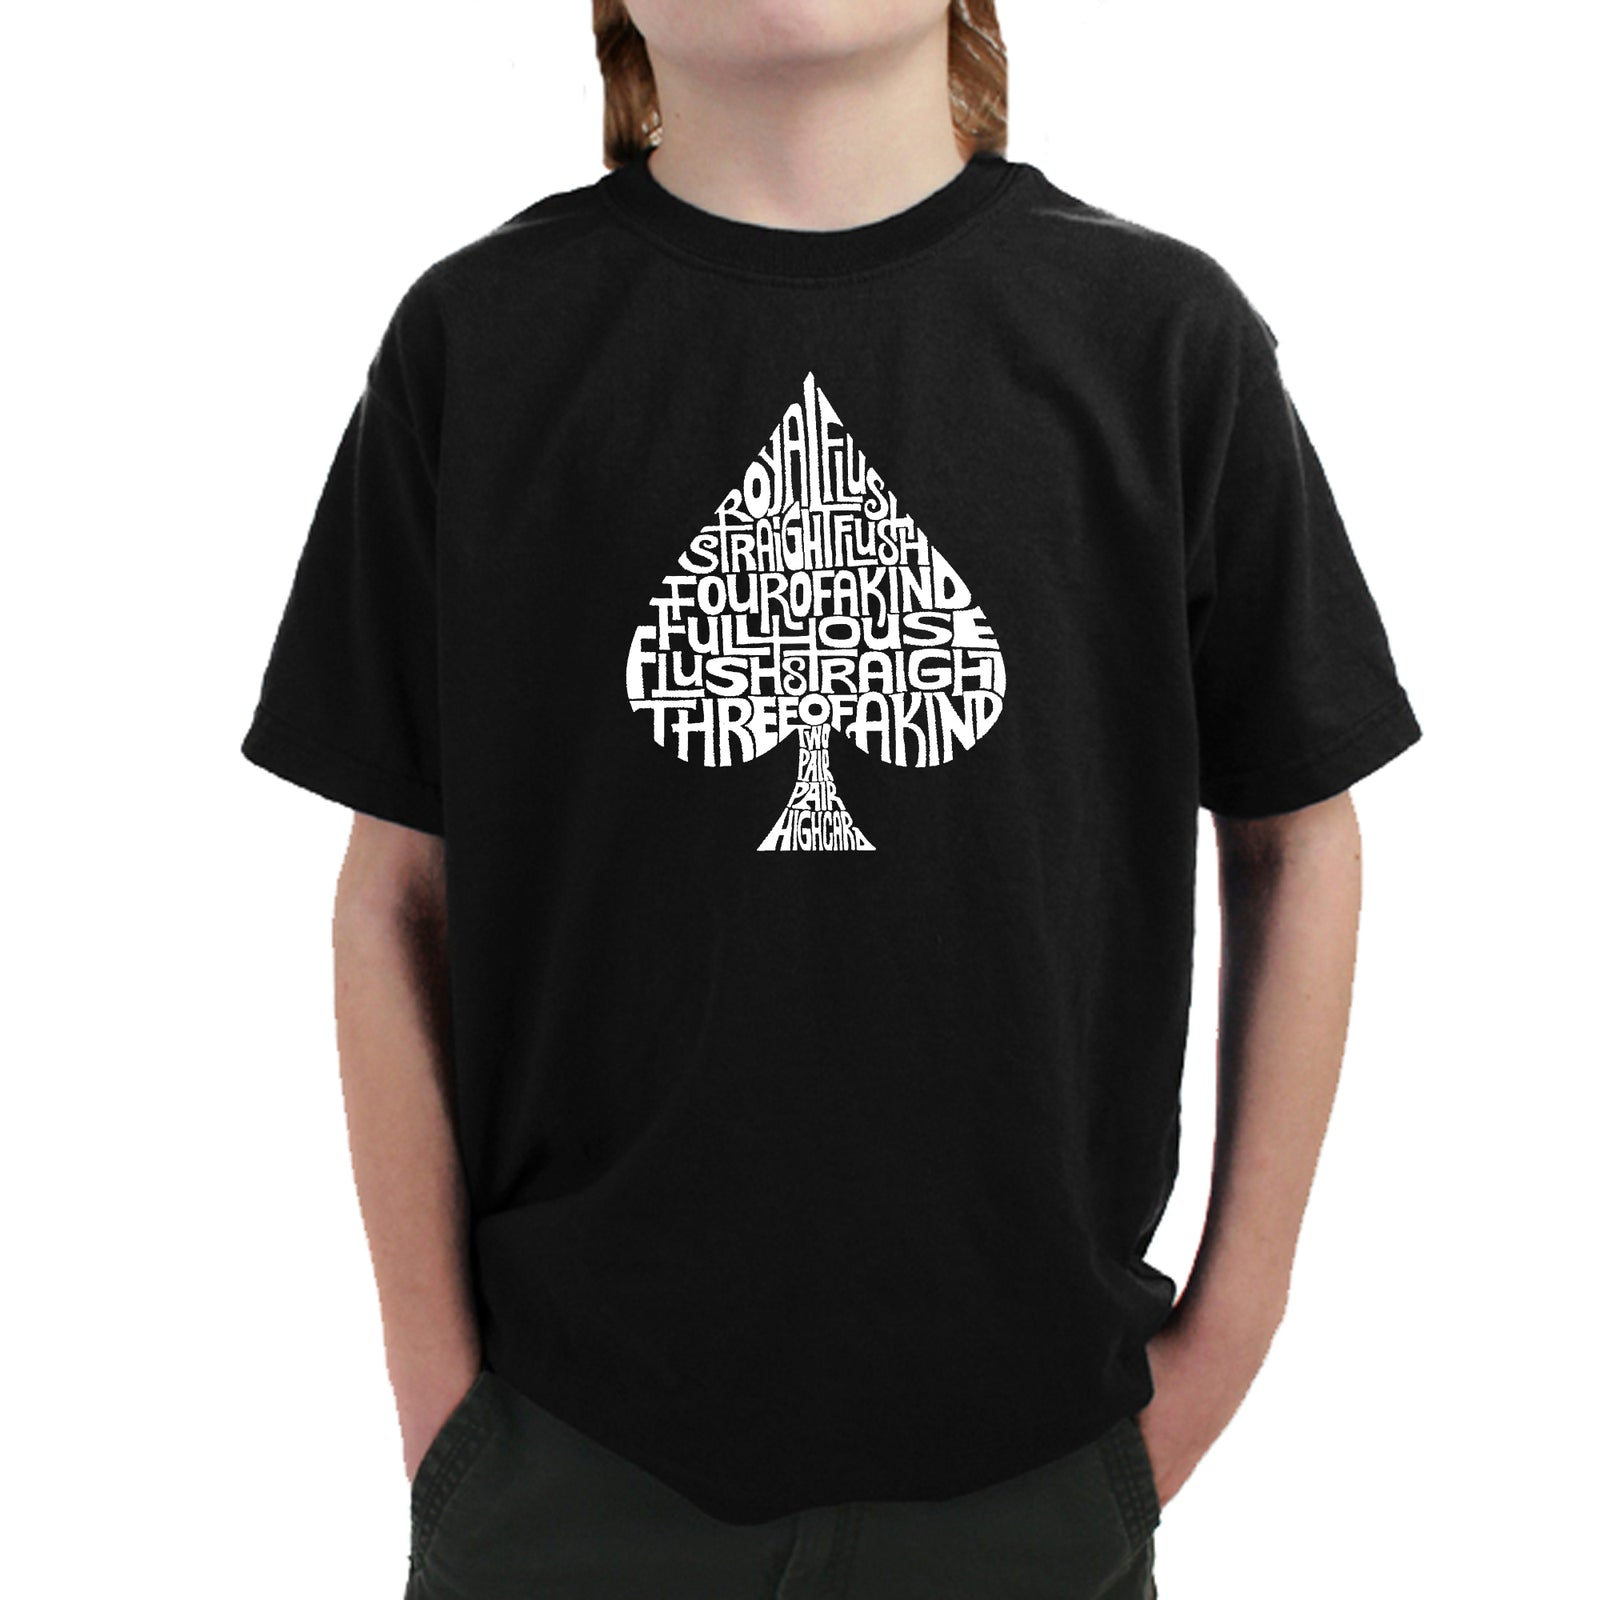 Boy's T-shirt - ORDER OF WINNING POKER HANDS